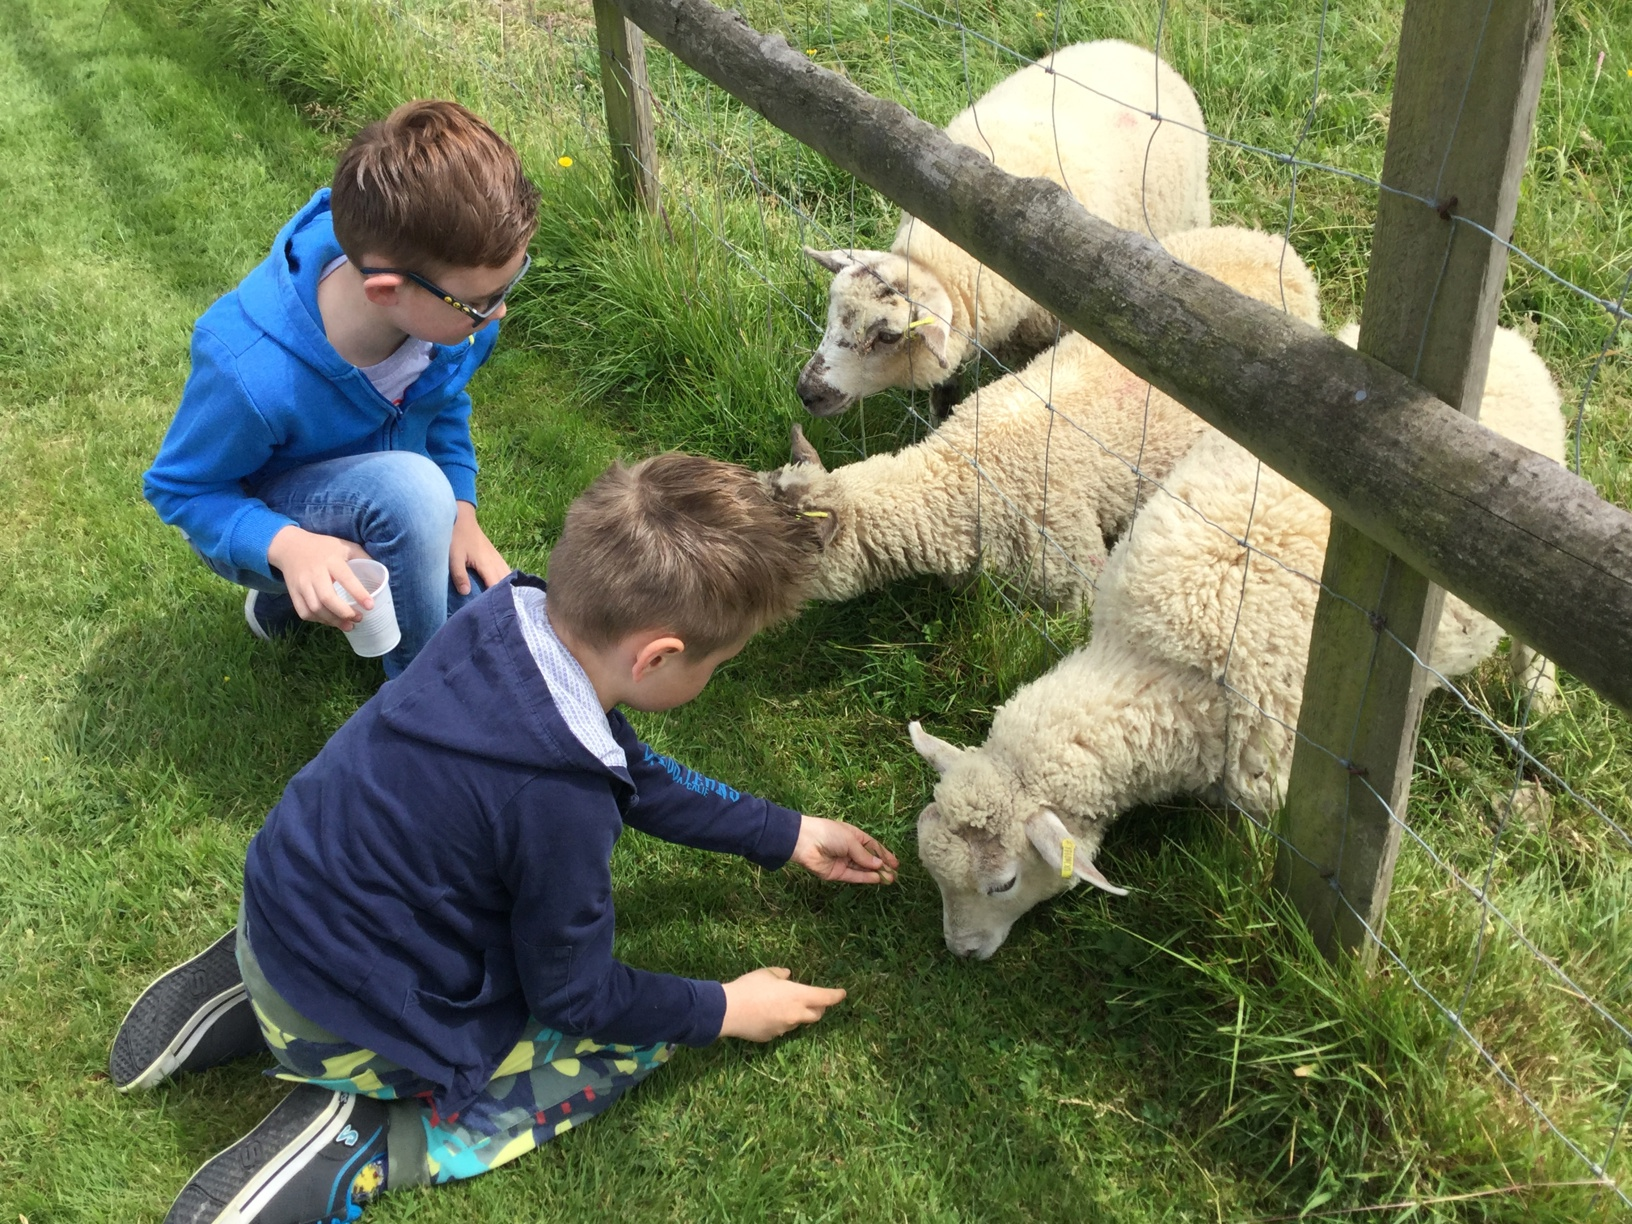 Two young boys feeding three sheep through a fence.